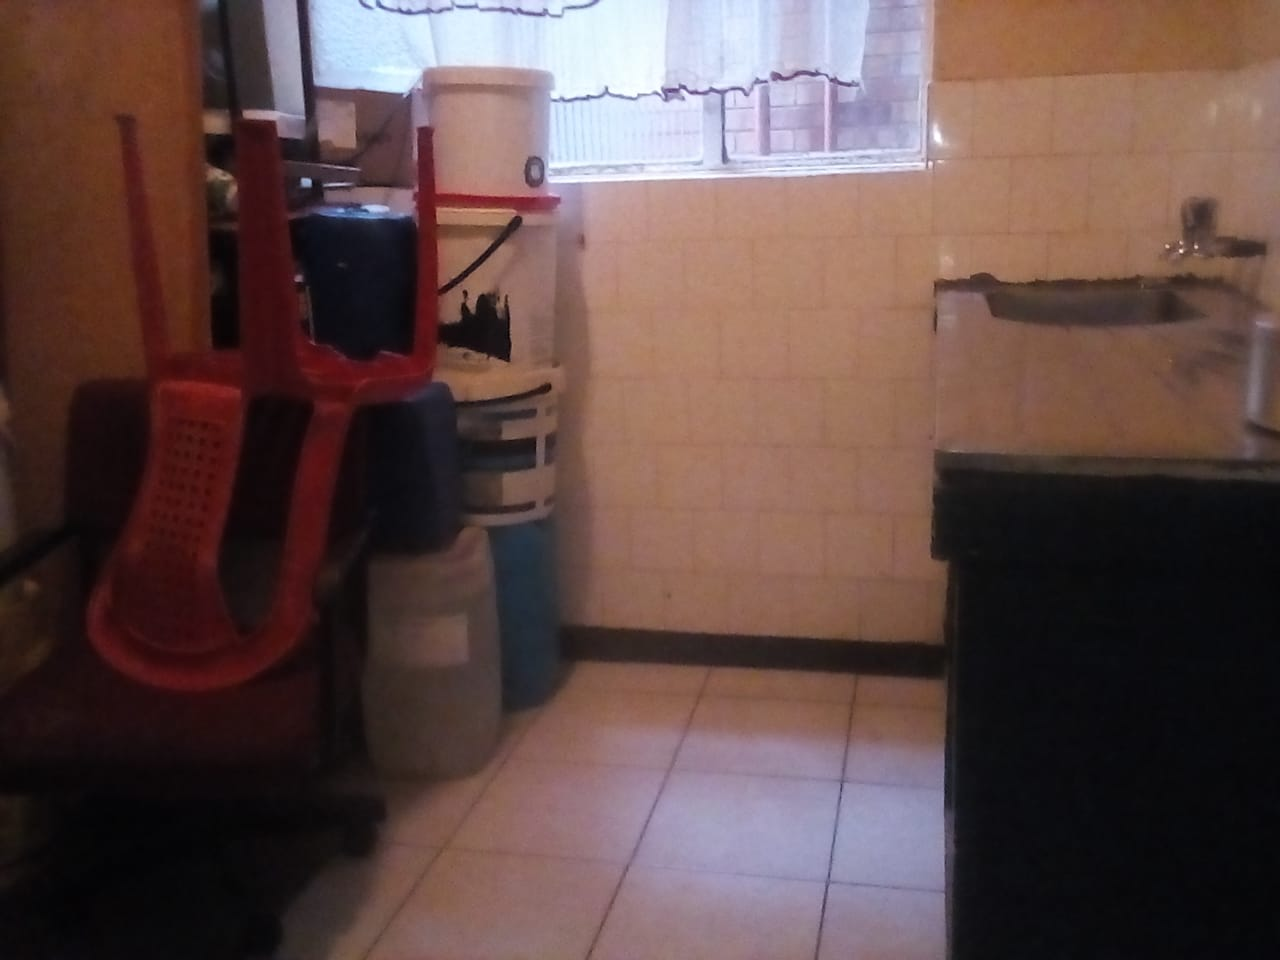 Apartment in Berea & Surrounds - WhatsApp Image 2021-07-21 at 5.38.59 PM (1).jpeg